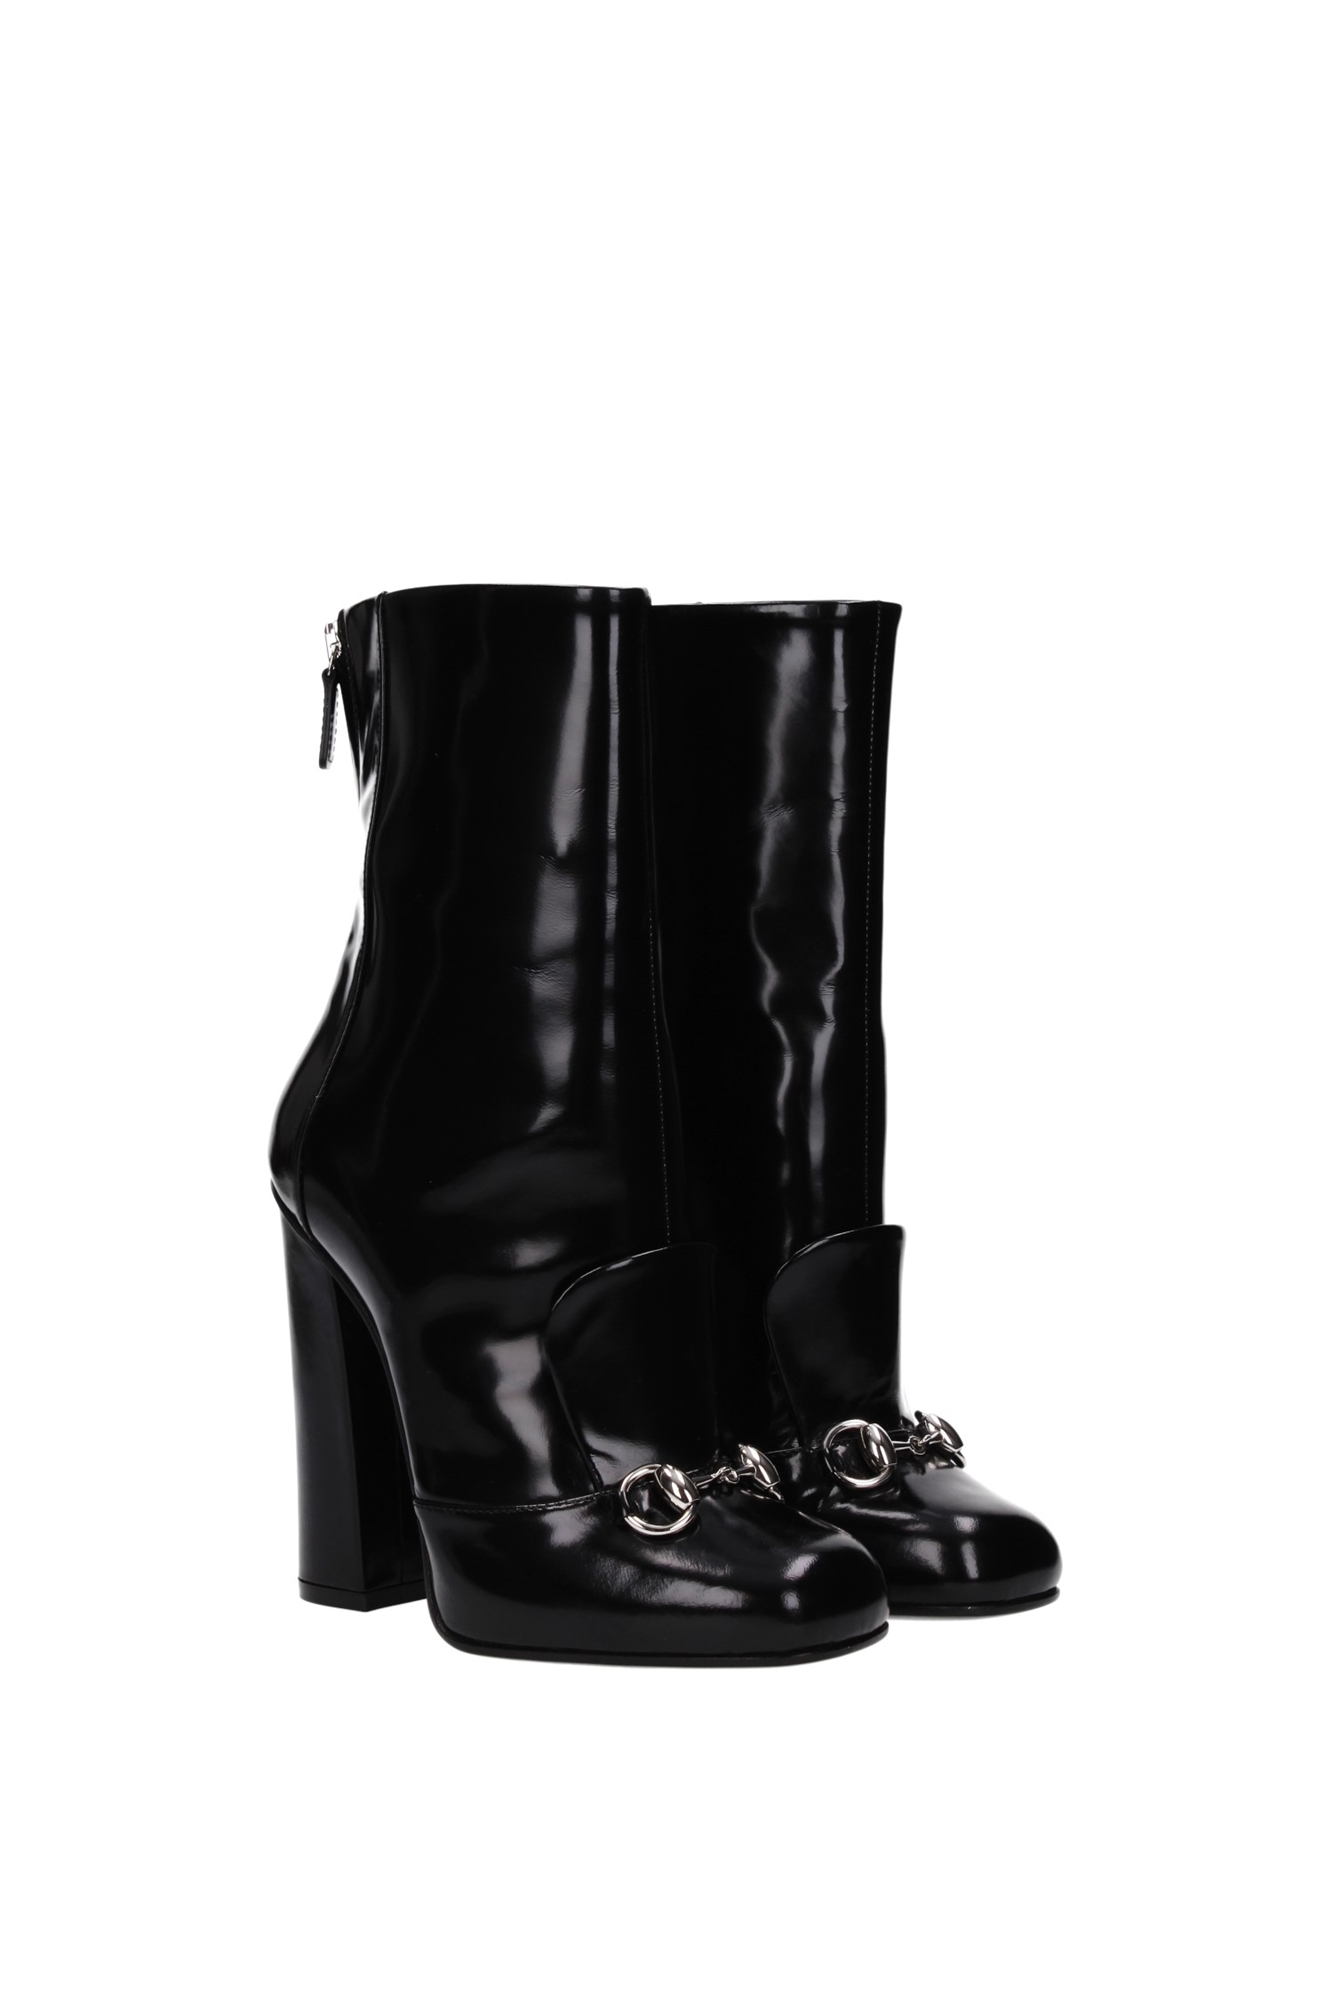 Ankle Boots Gucci Women Leather Black 363803CLG001000 | eBay